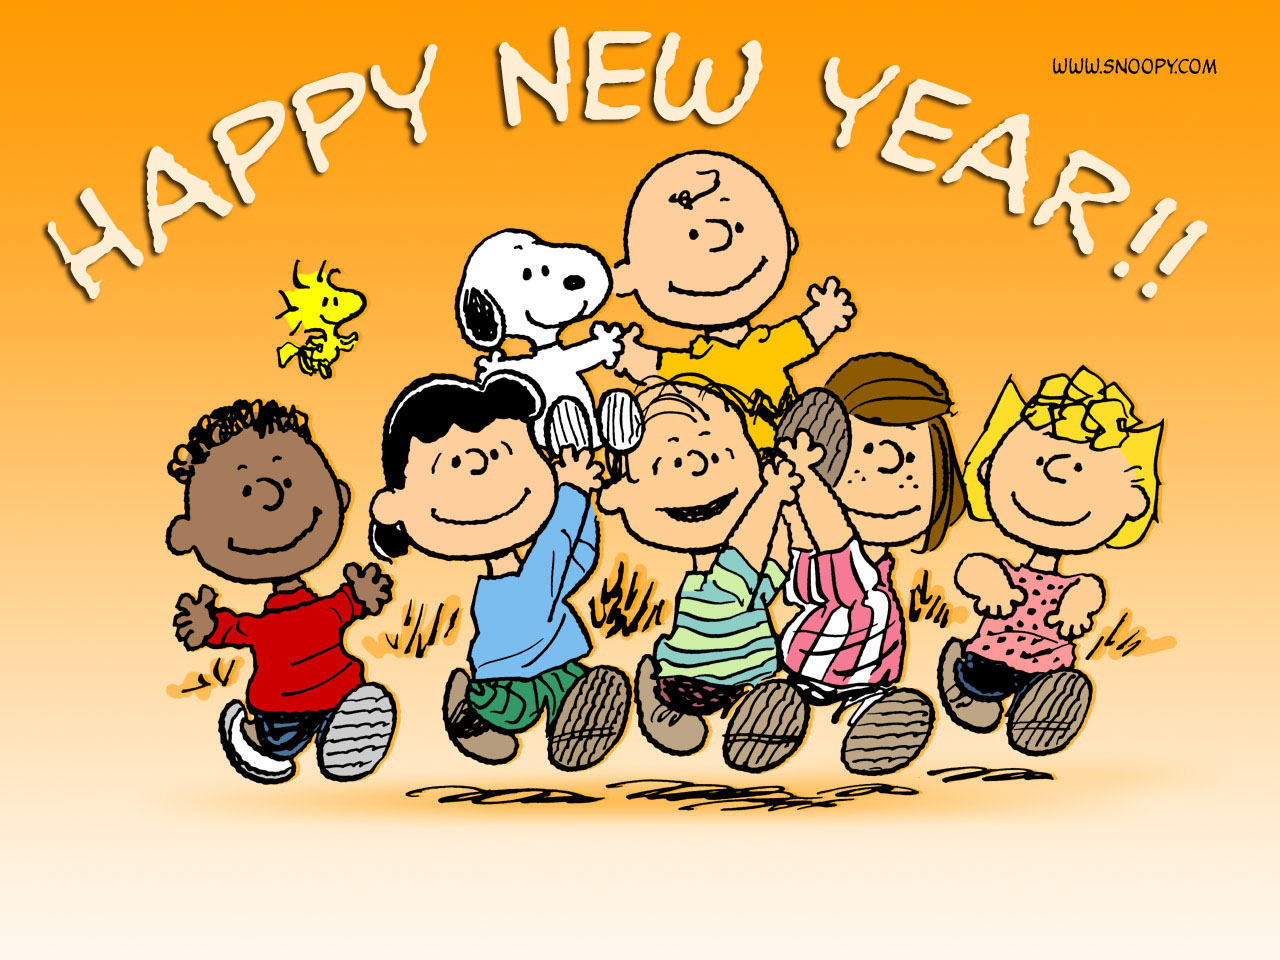 new new year sms 140 character funny new year sms sweet and nice new . 1280 x 960.Happy New Year E-cards Free